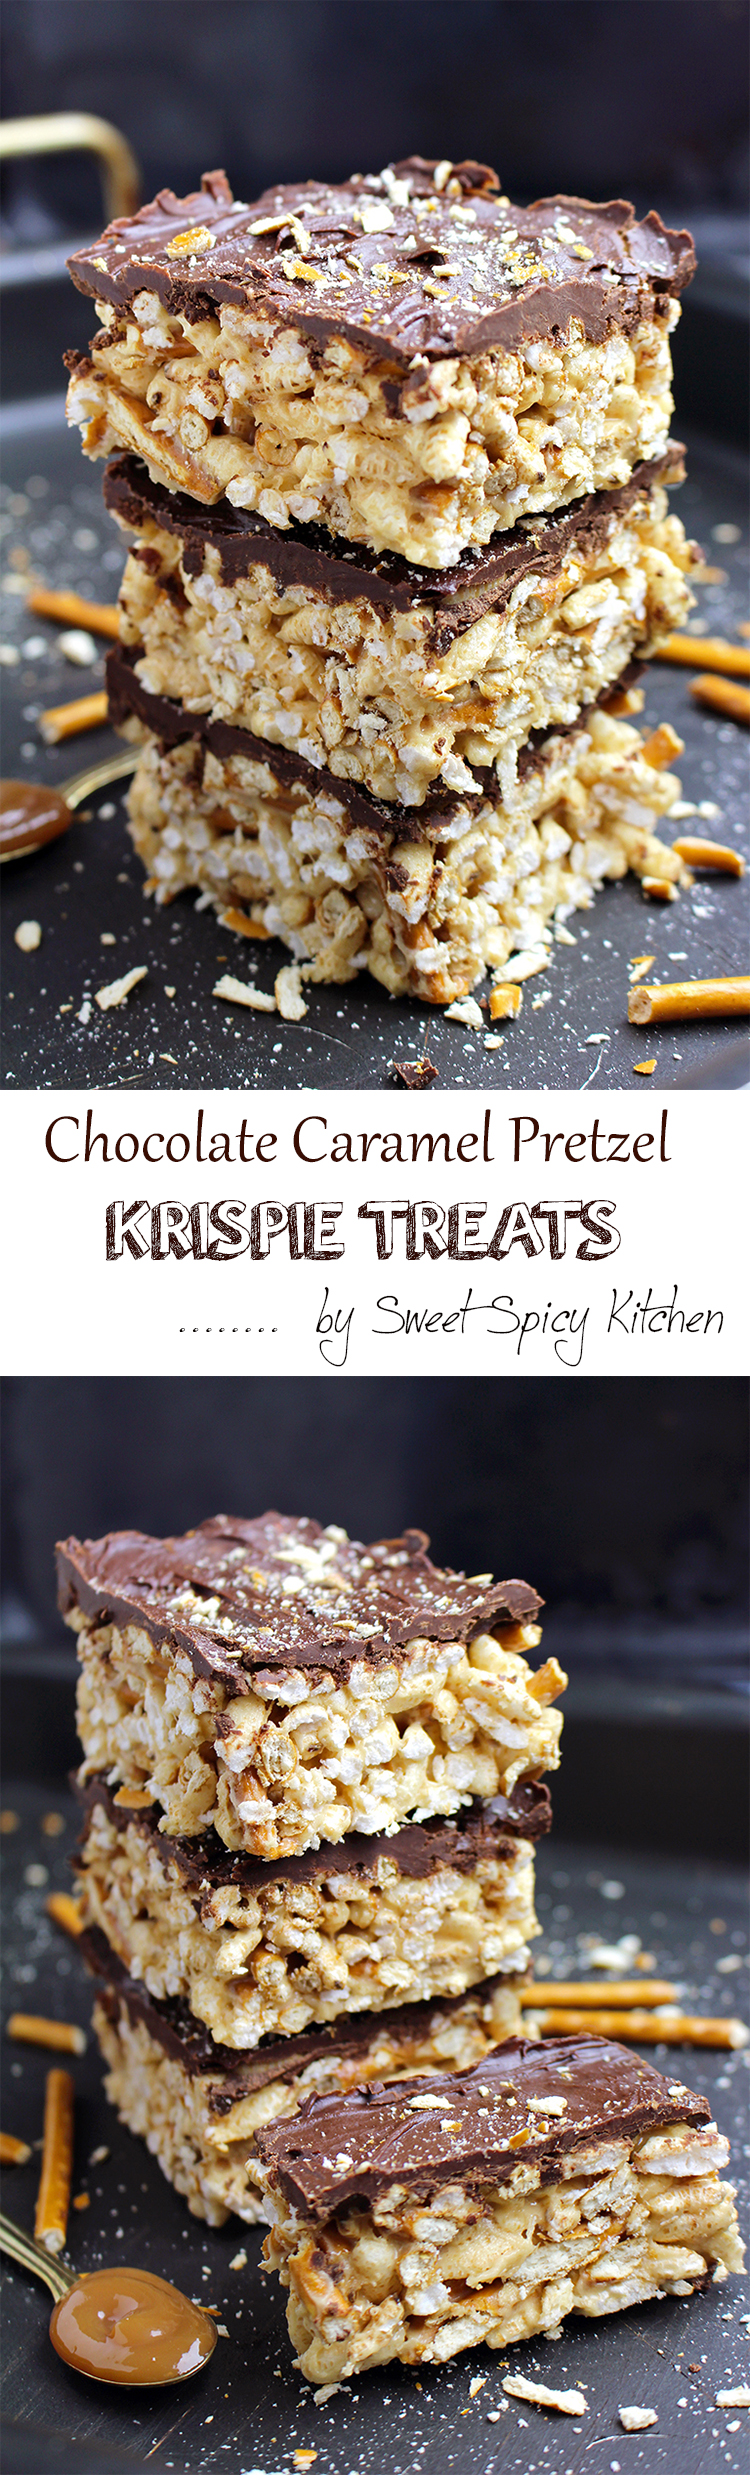 Untitled-155 Chocolate Caramel Pretzel Krispie Treats